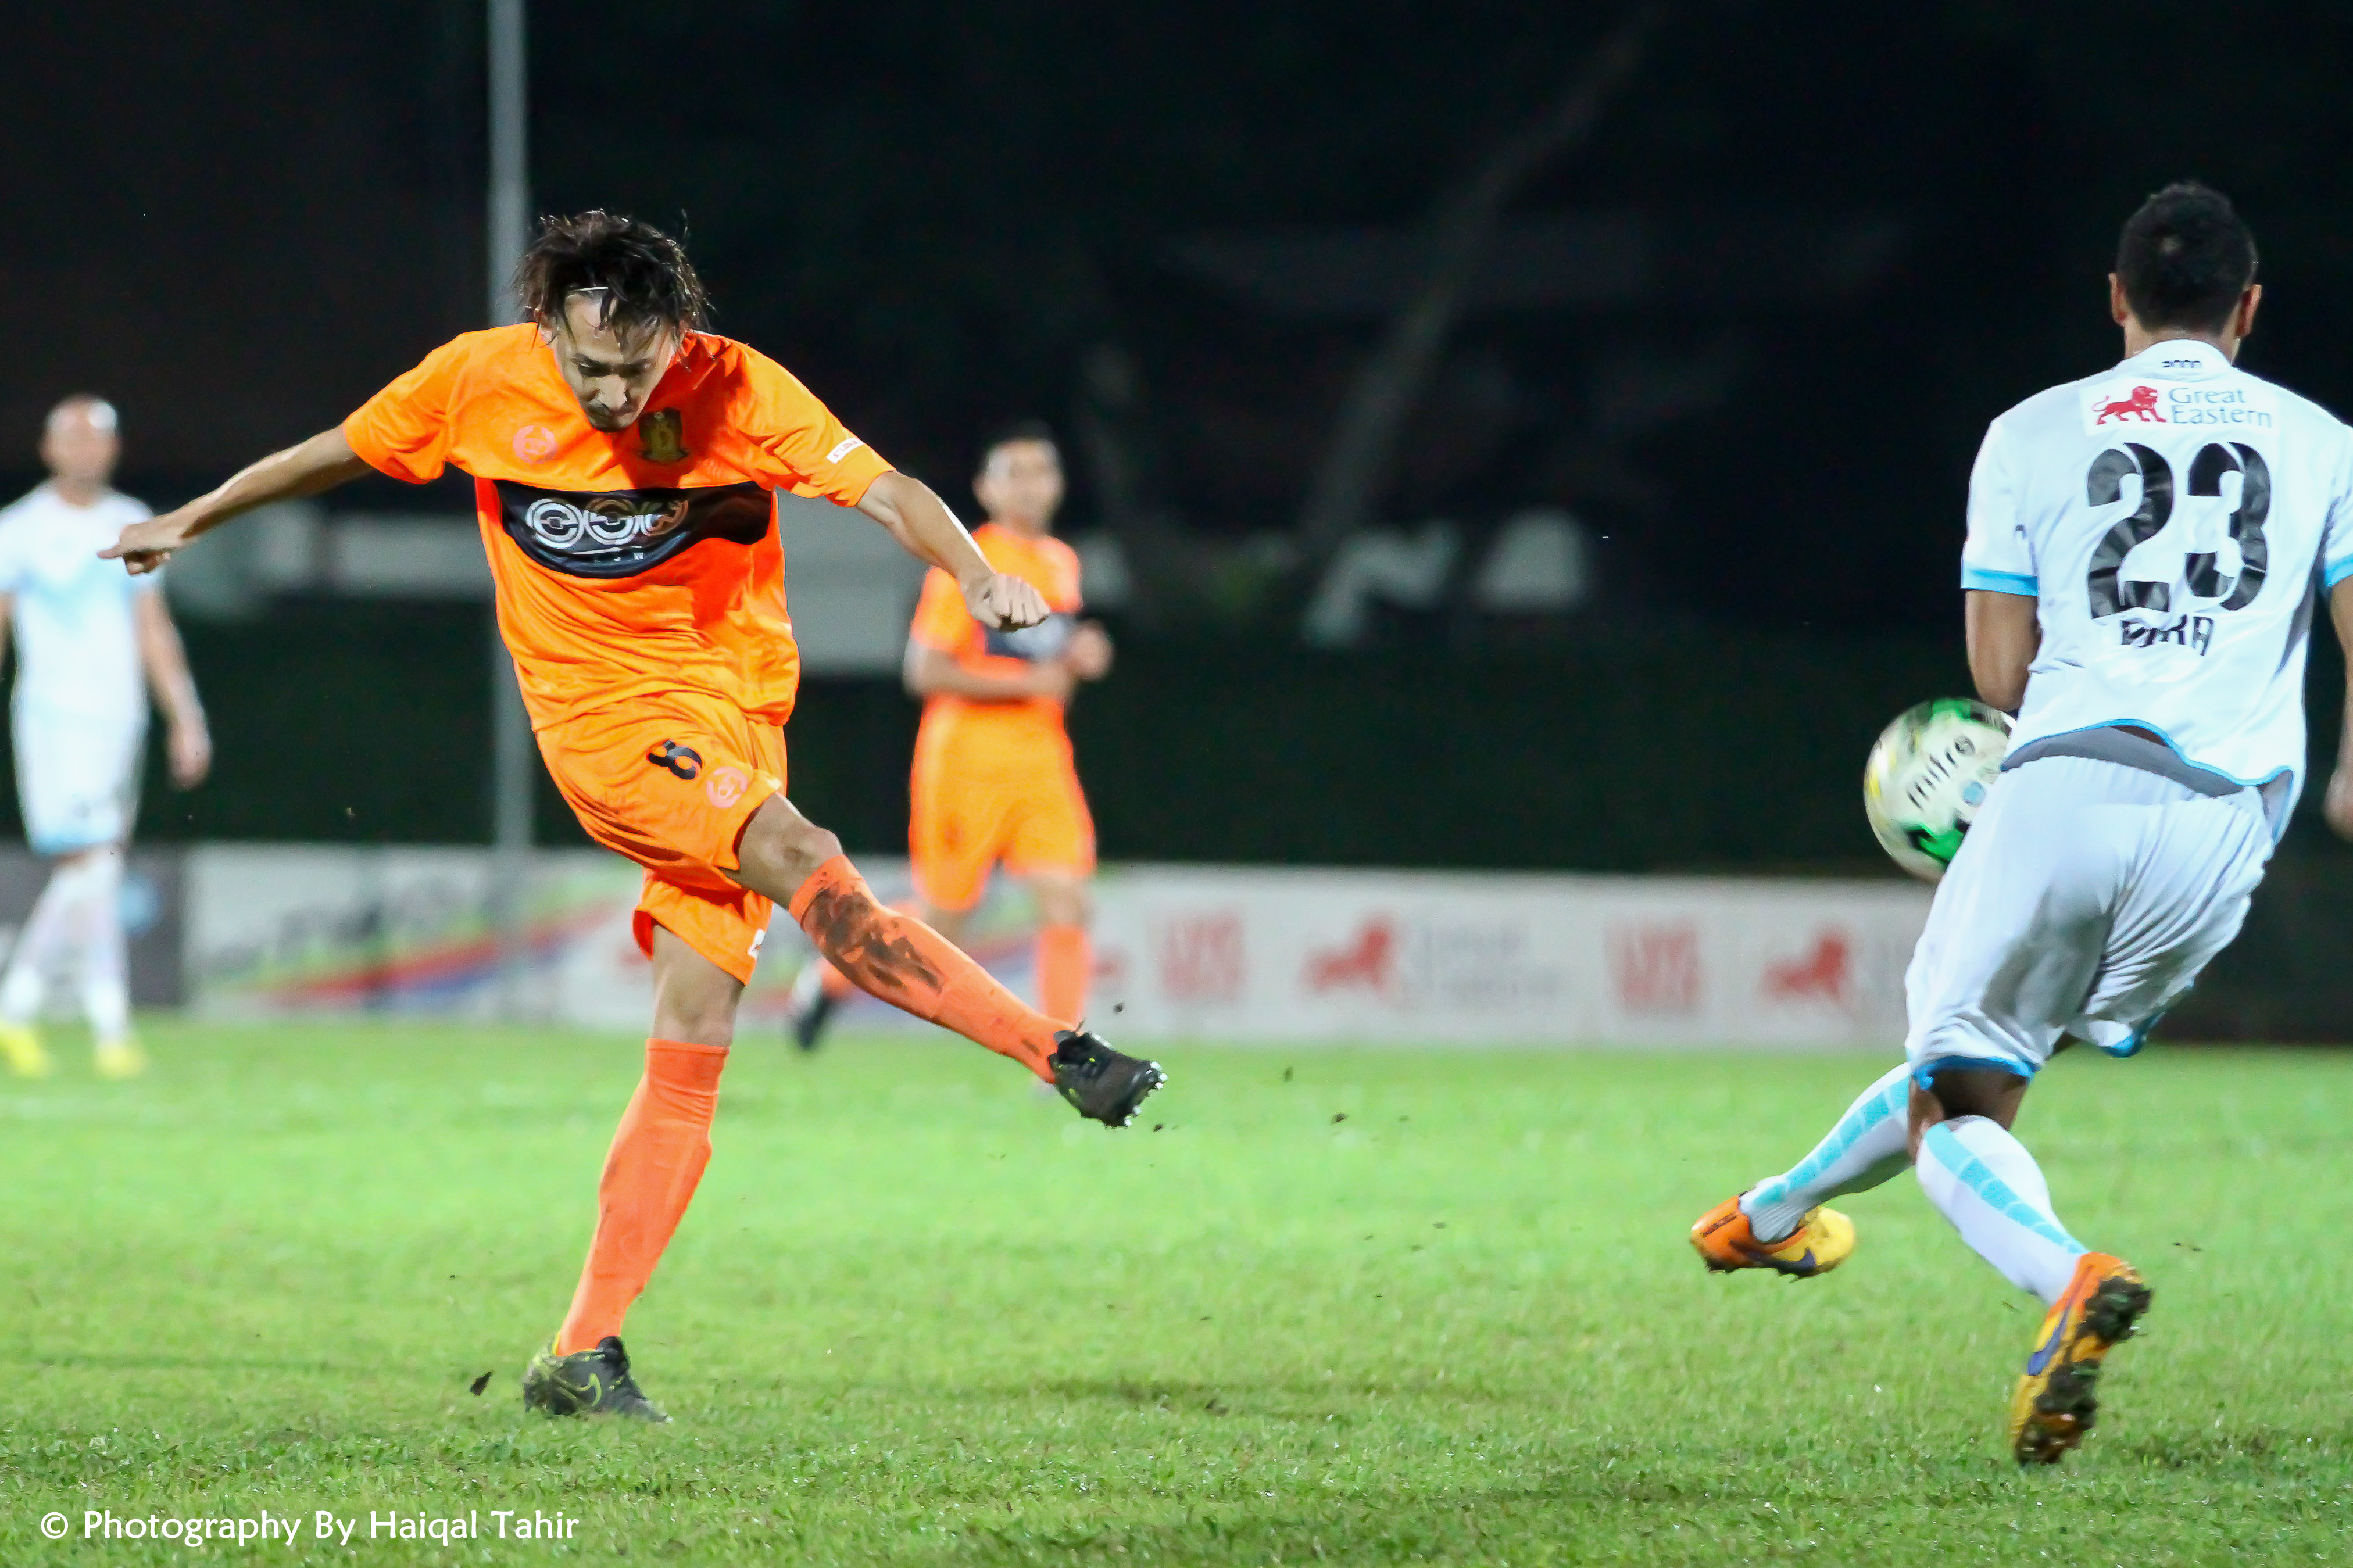 File photo: Fumiya Kogure unleashed a shot on goal against DPMM.